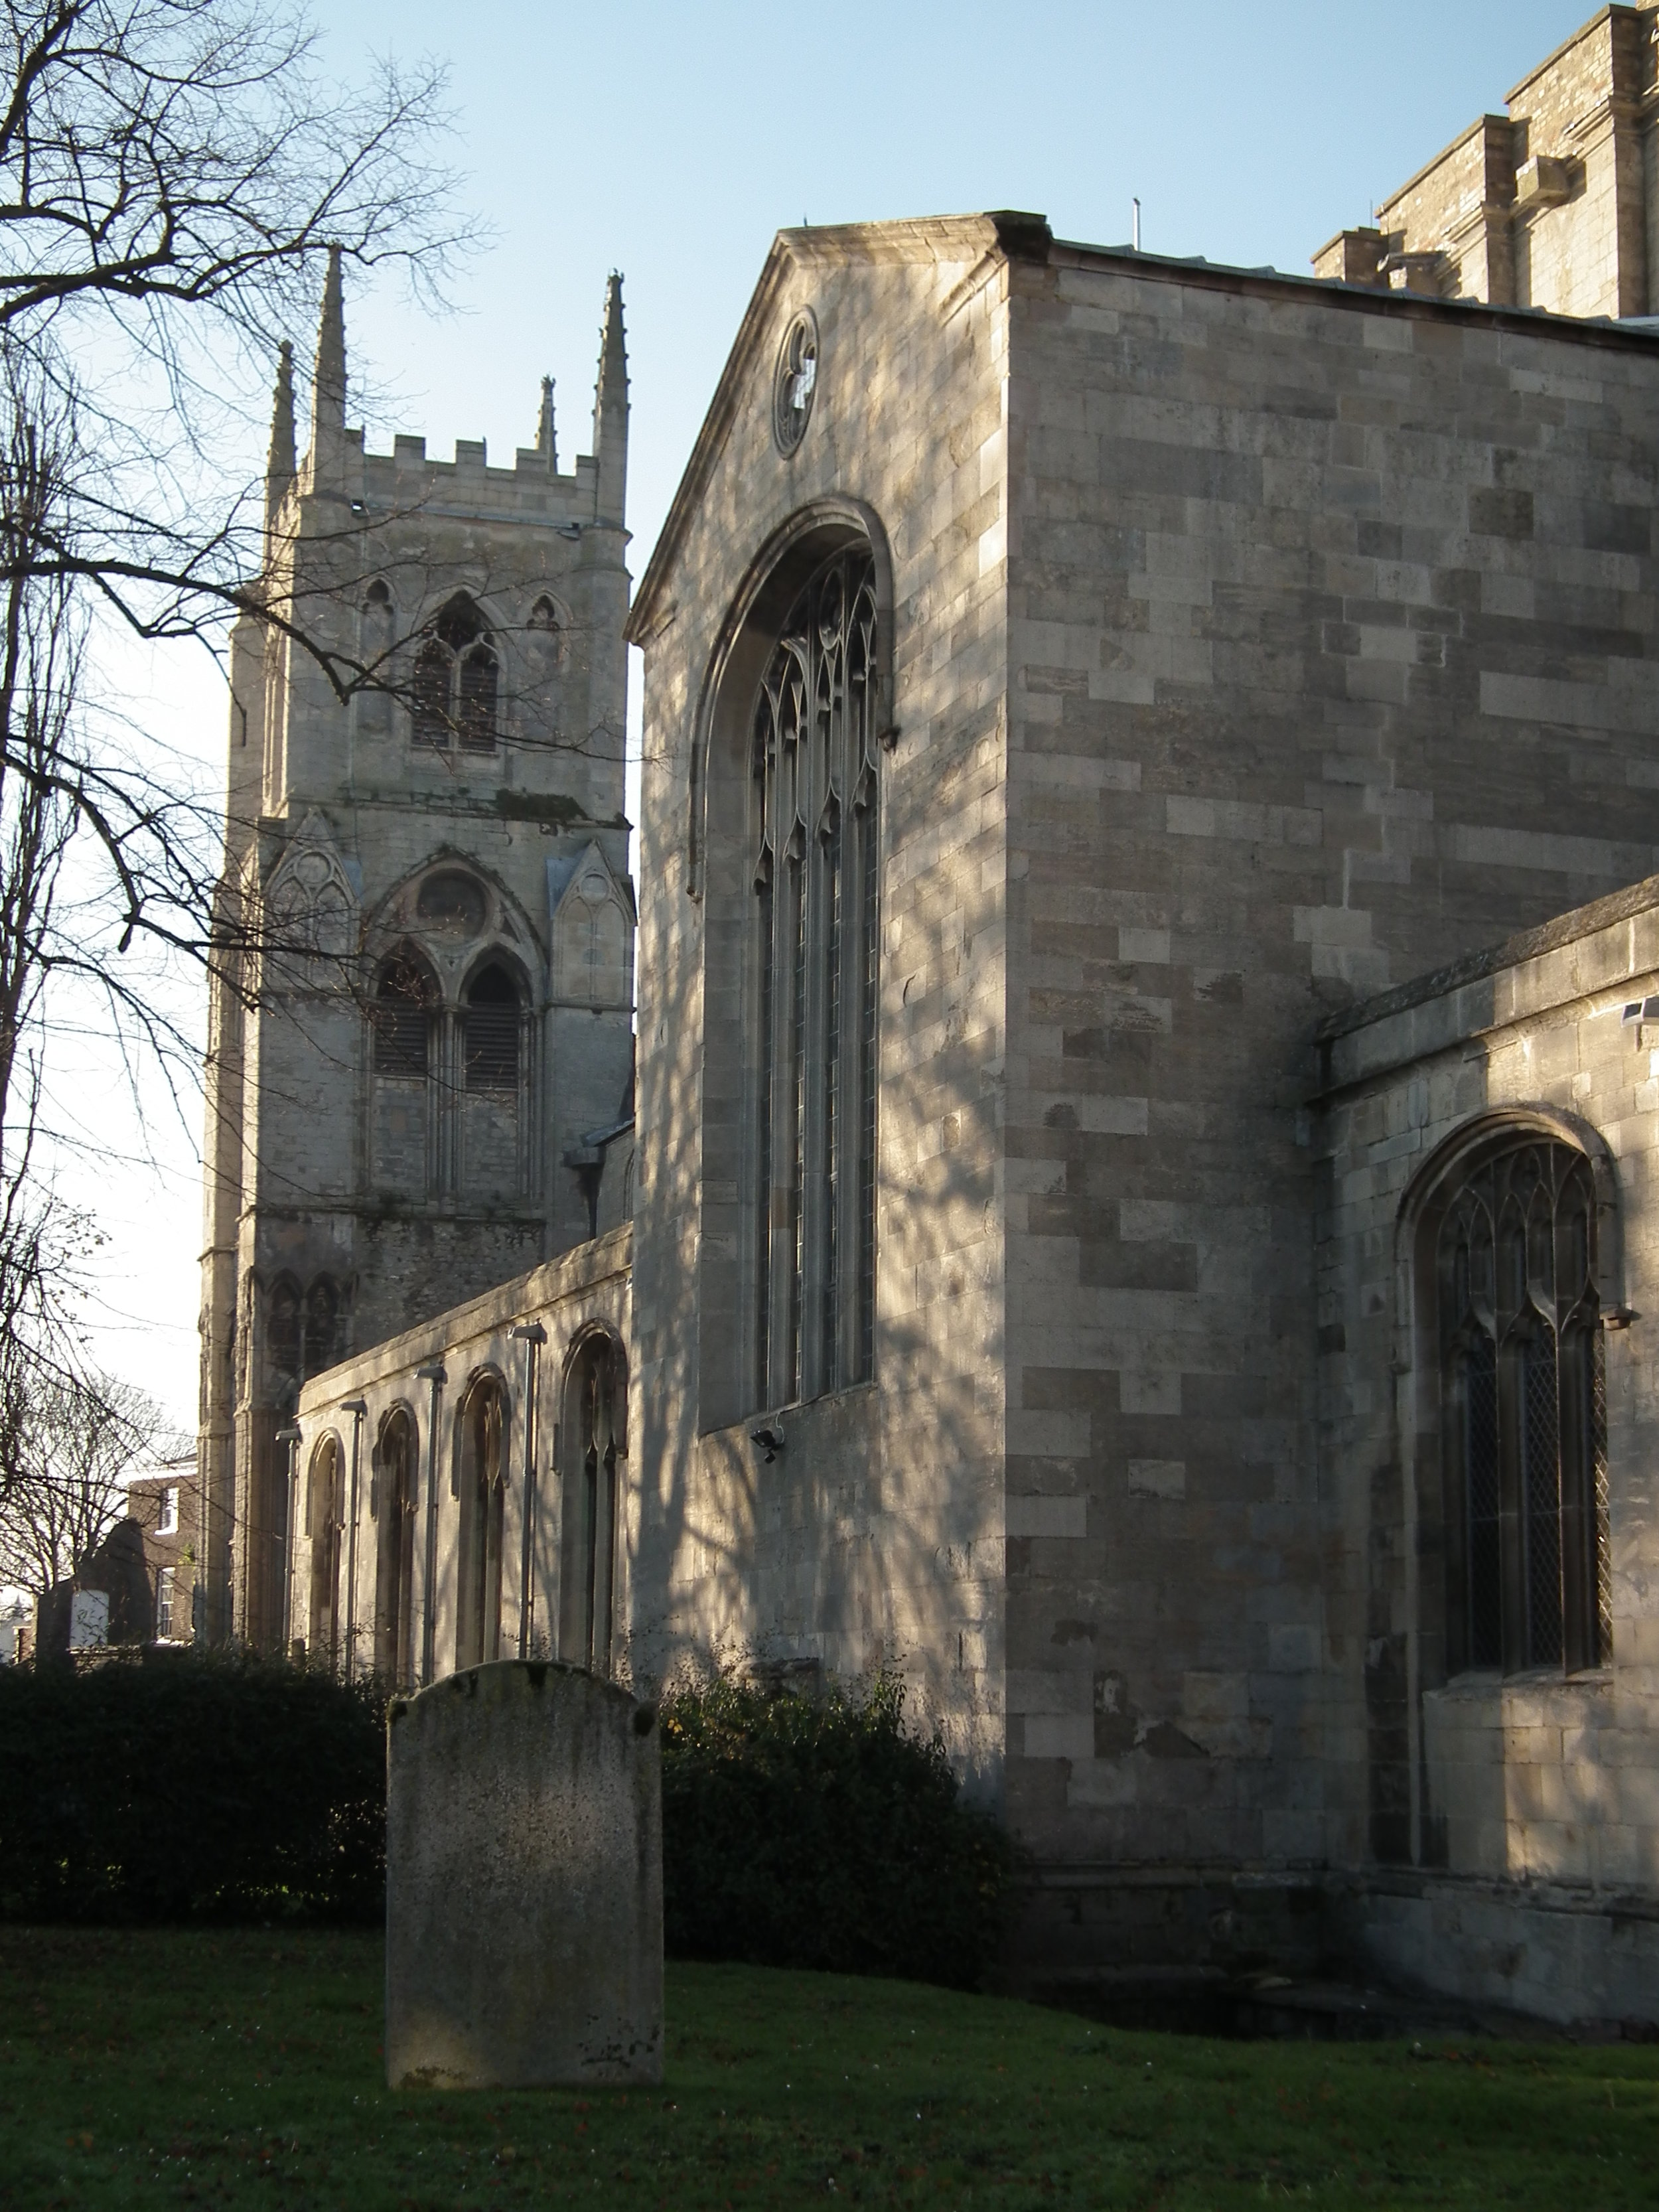 St Margaret's Church showing smooth cut limestone wall surfaces